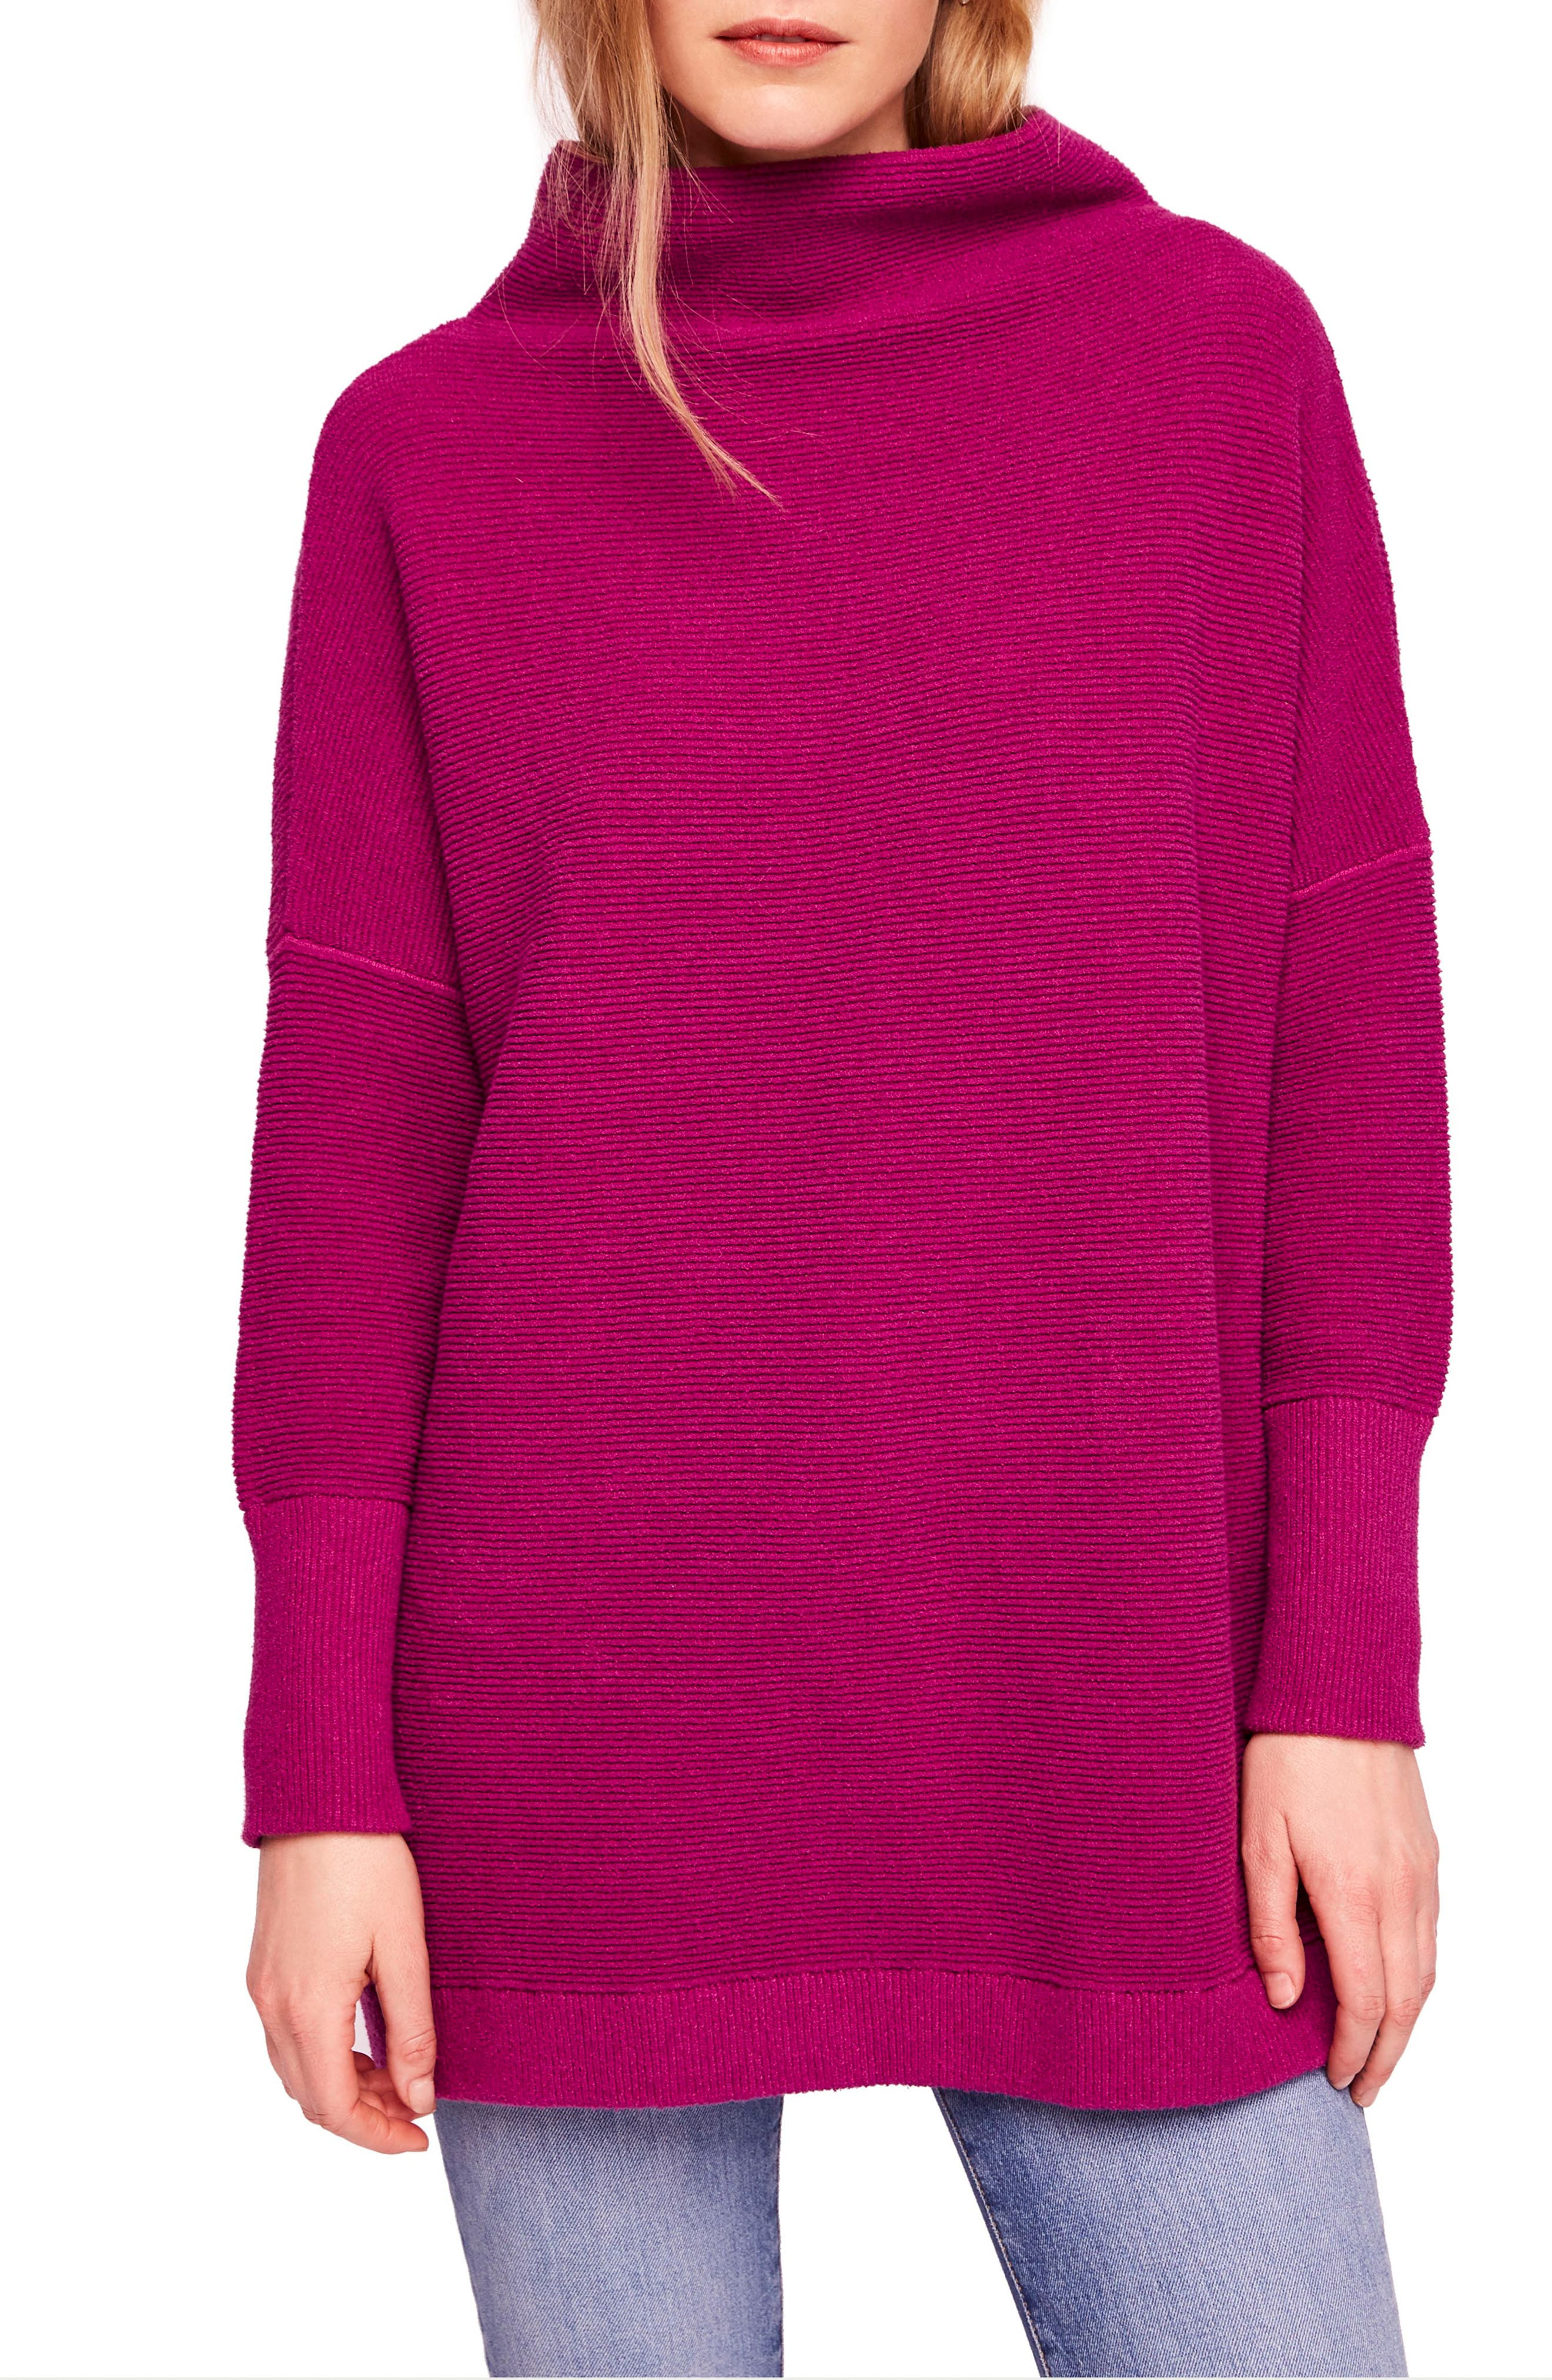 Ottoman Slouchy Tunic,                         Main,                         color, MULBERRY